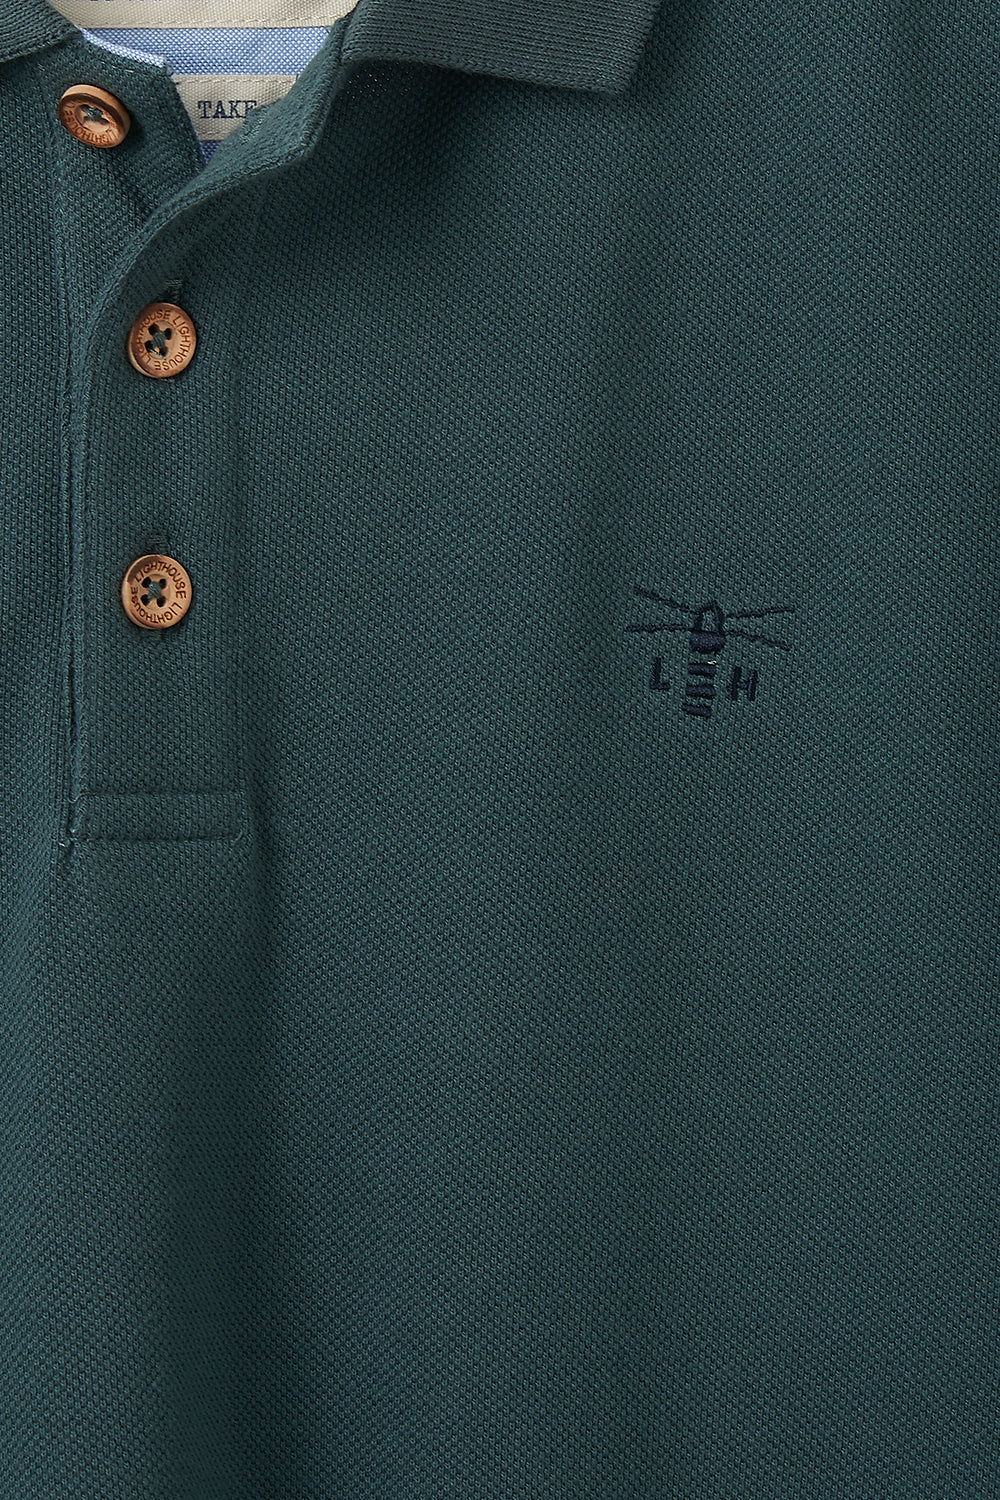 Pier Polo Shirt - Olive Green